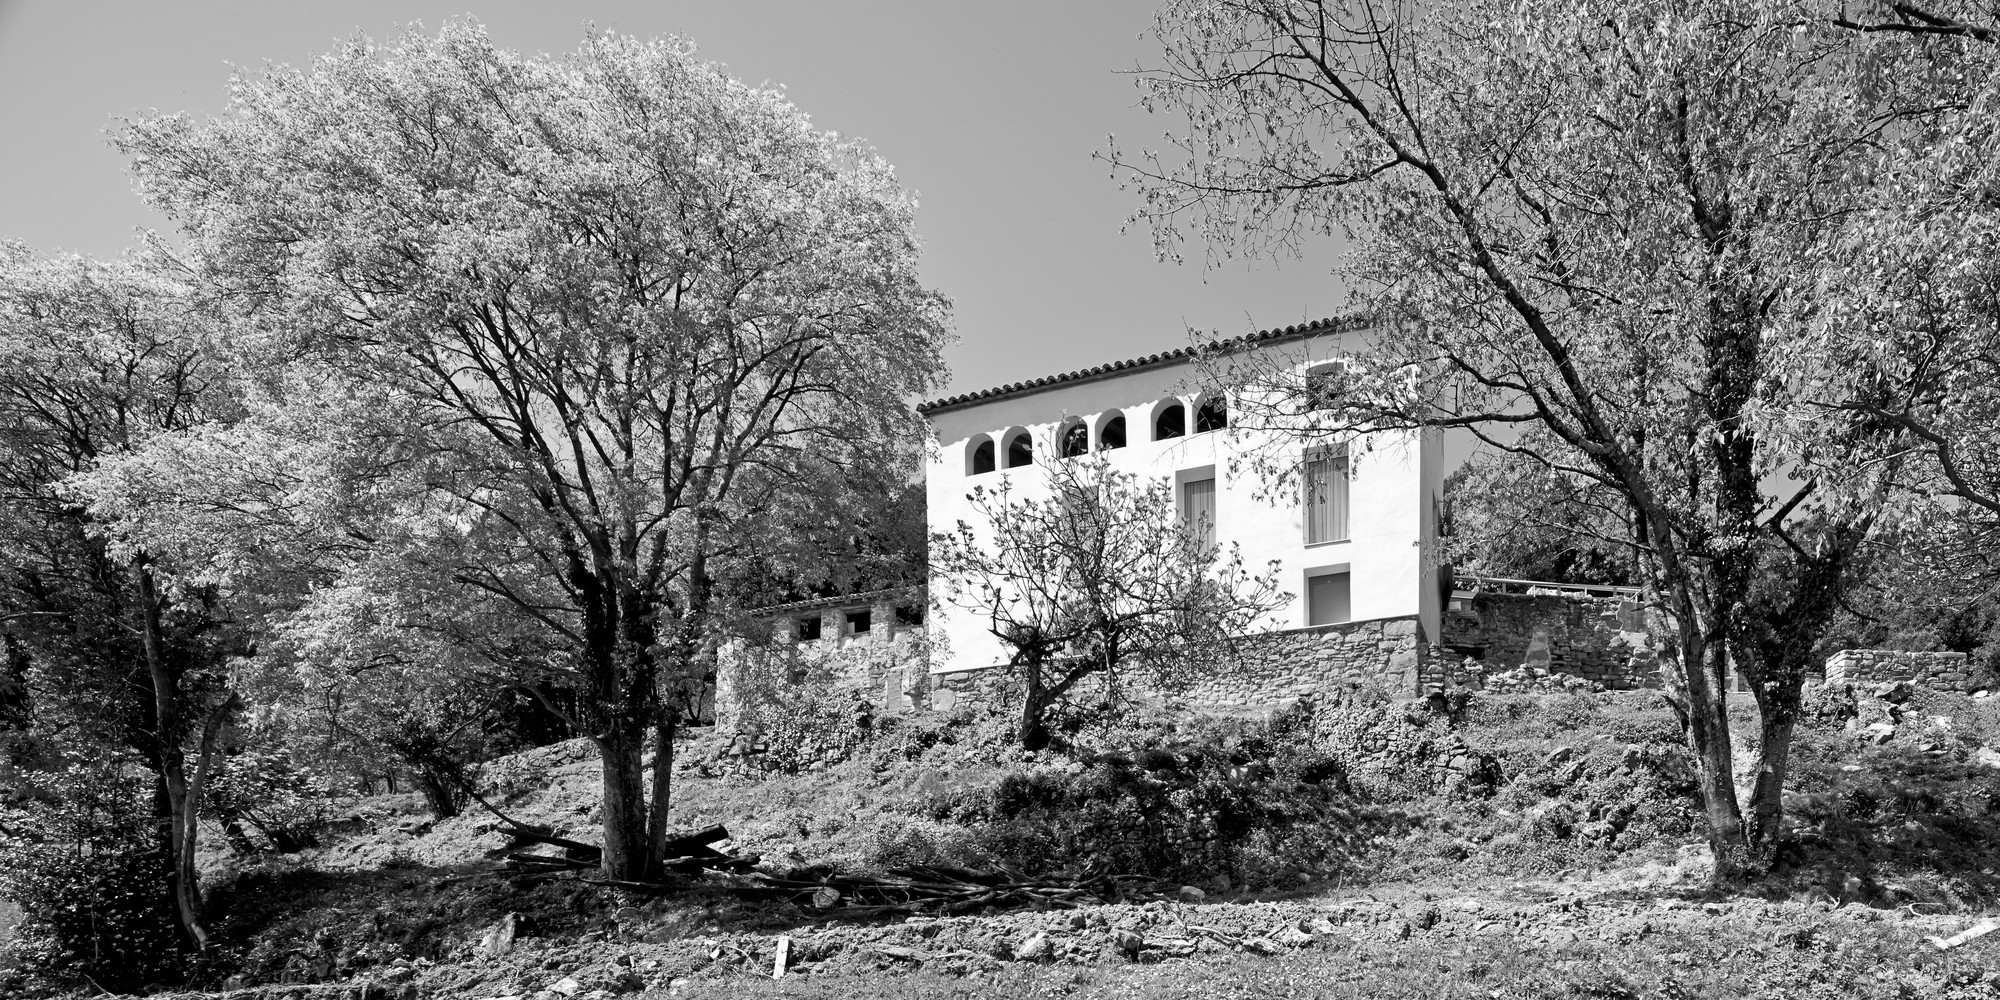 Reconstruction of an Old Rural Mansion / Dot Arquitectes, Courtesy of Dot Arquitectes